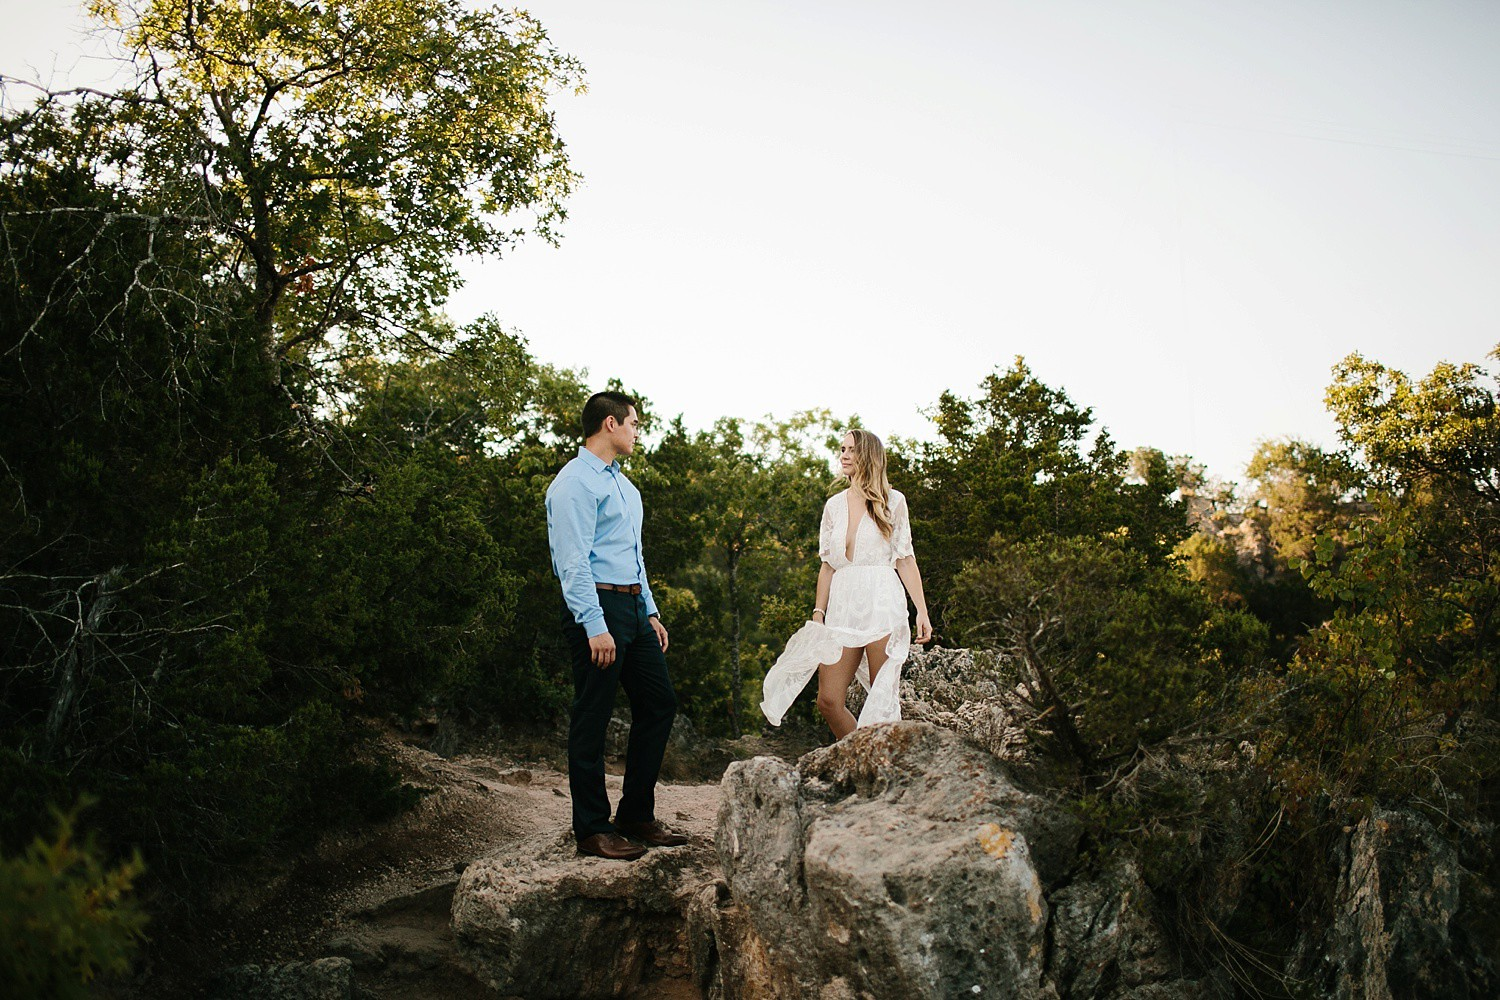 Blake + Jennifer || an adventurous Turner Falls engagement session